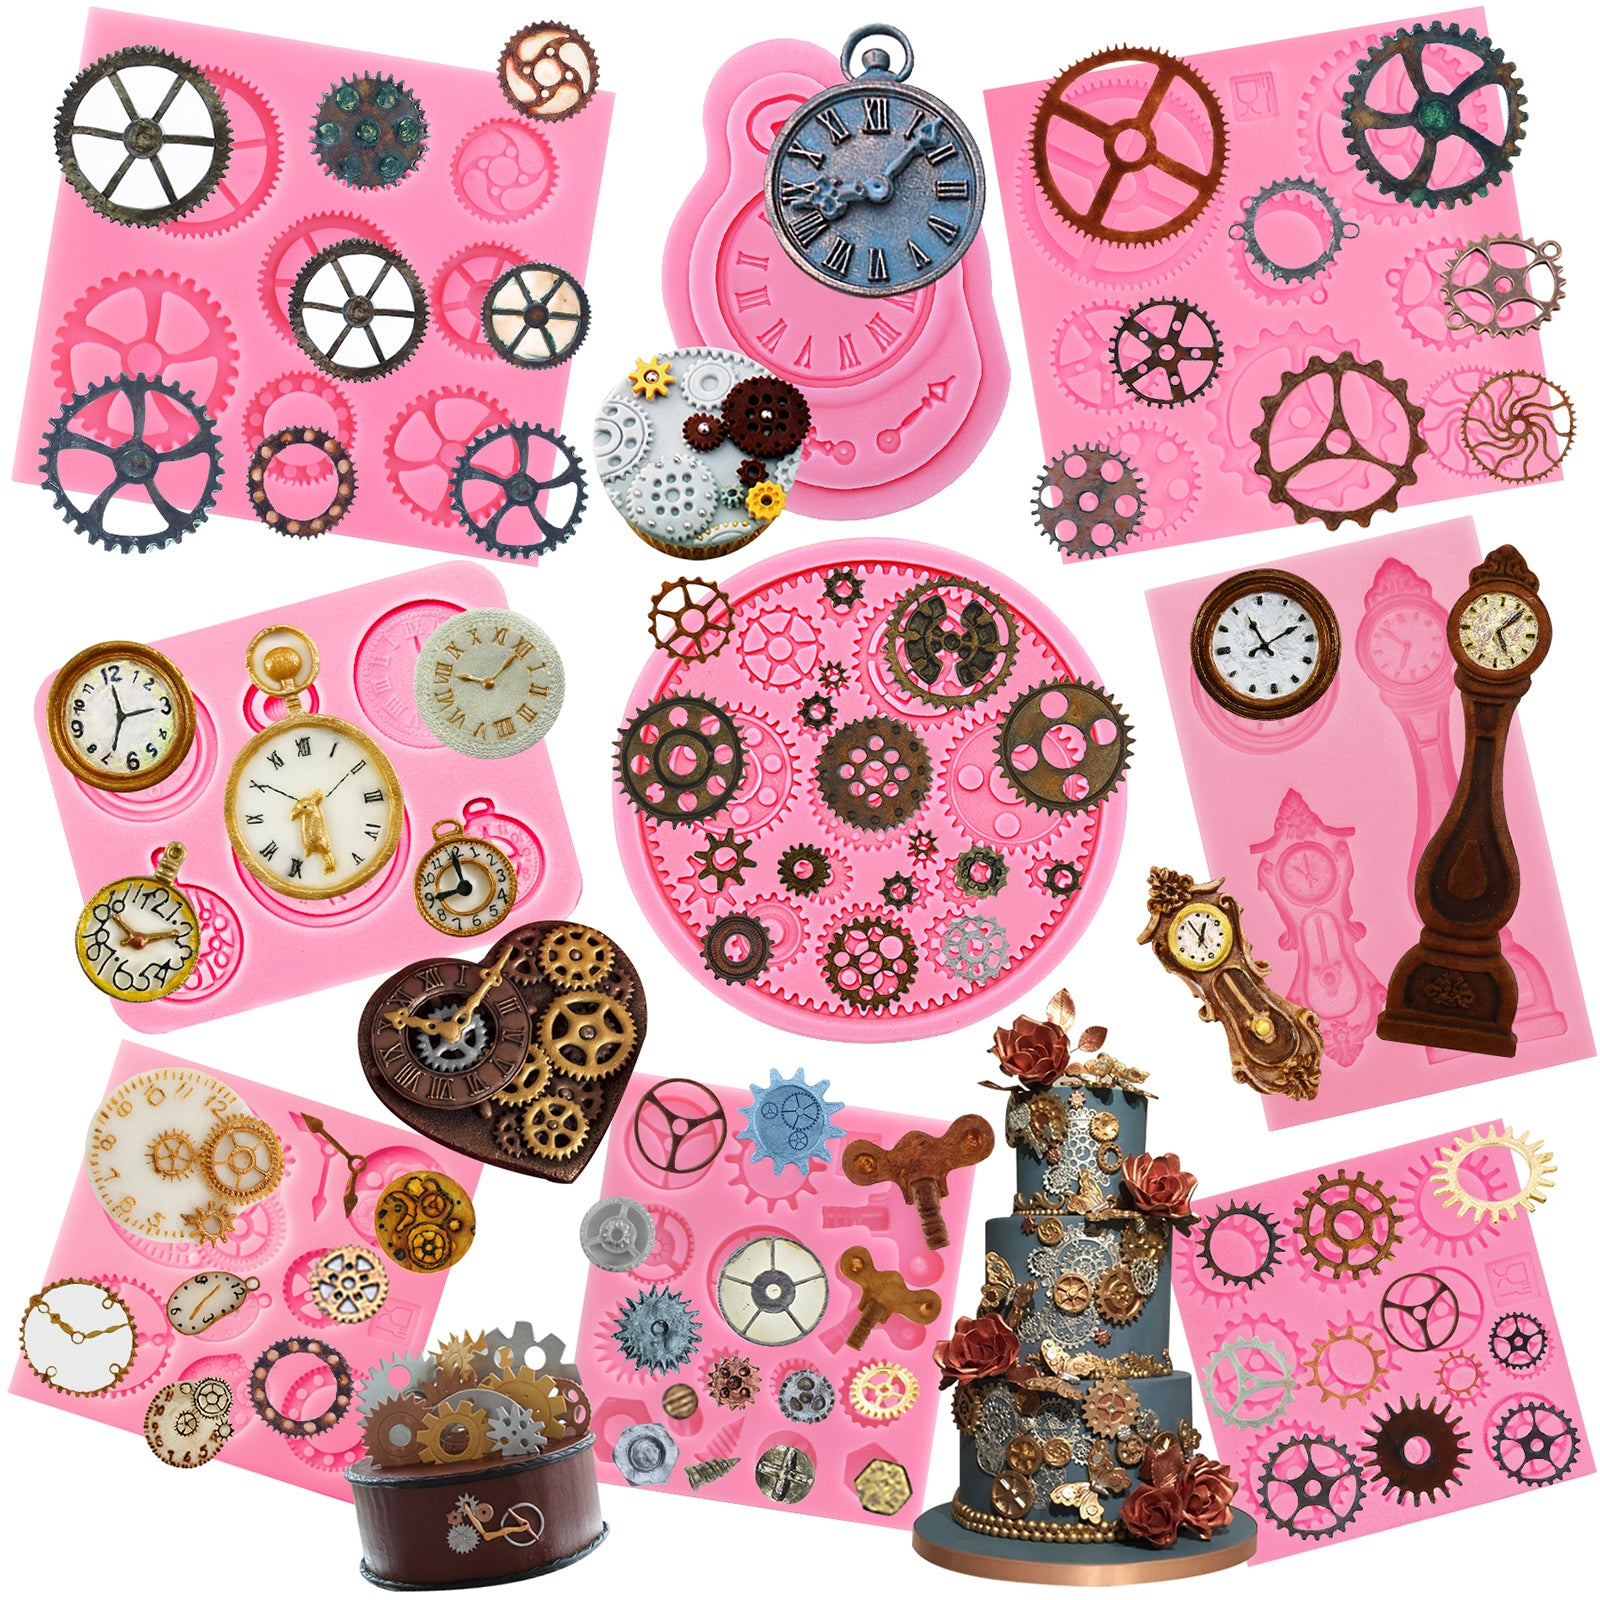 Steampunk Gear Fondant Silicone Molds Set 9-Pack